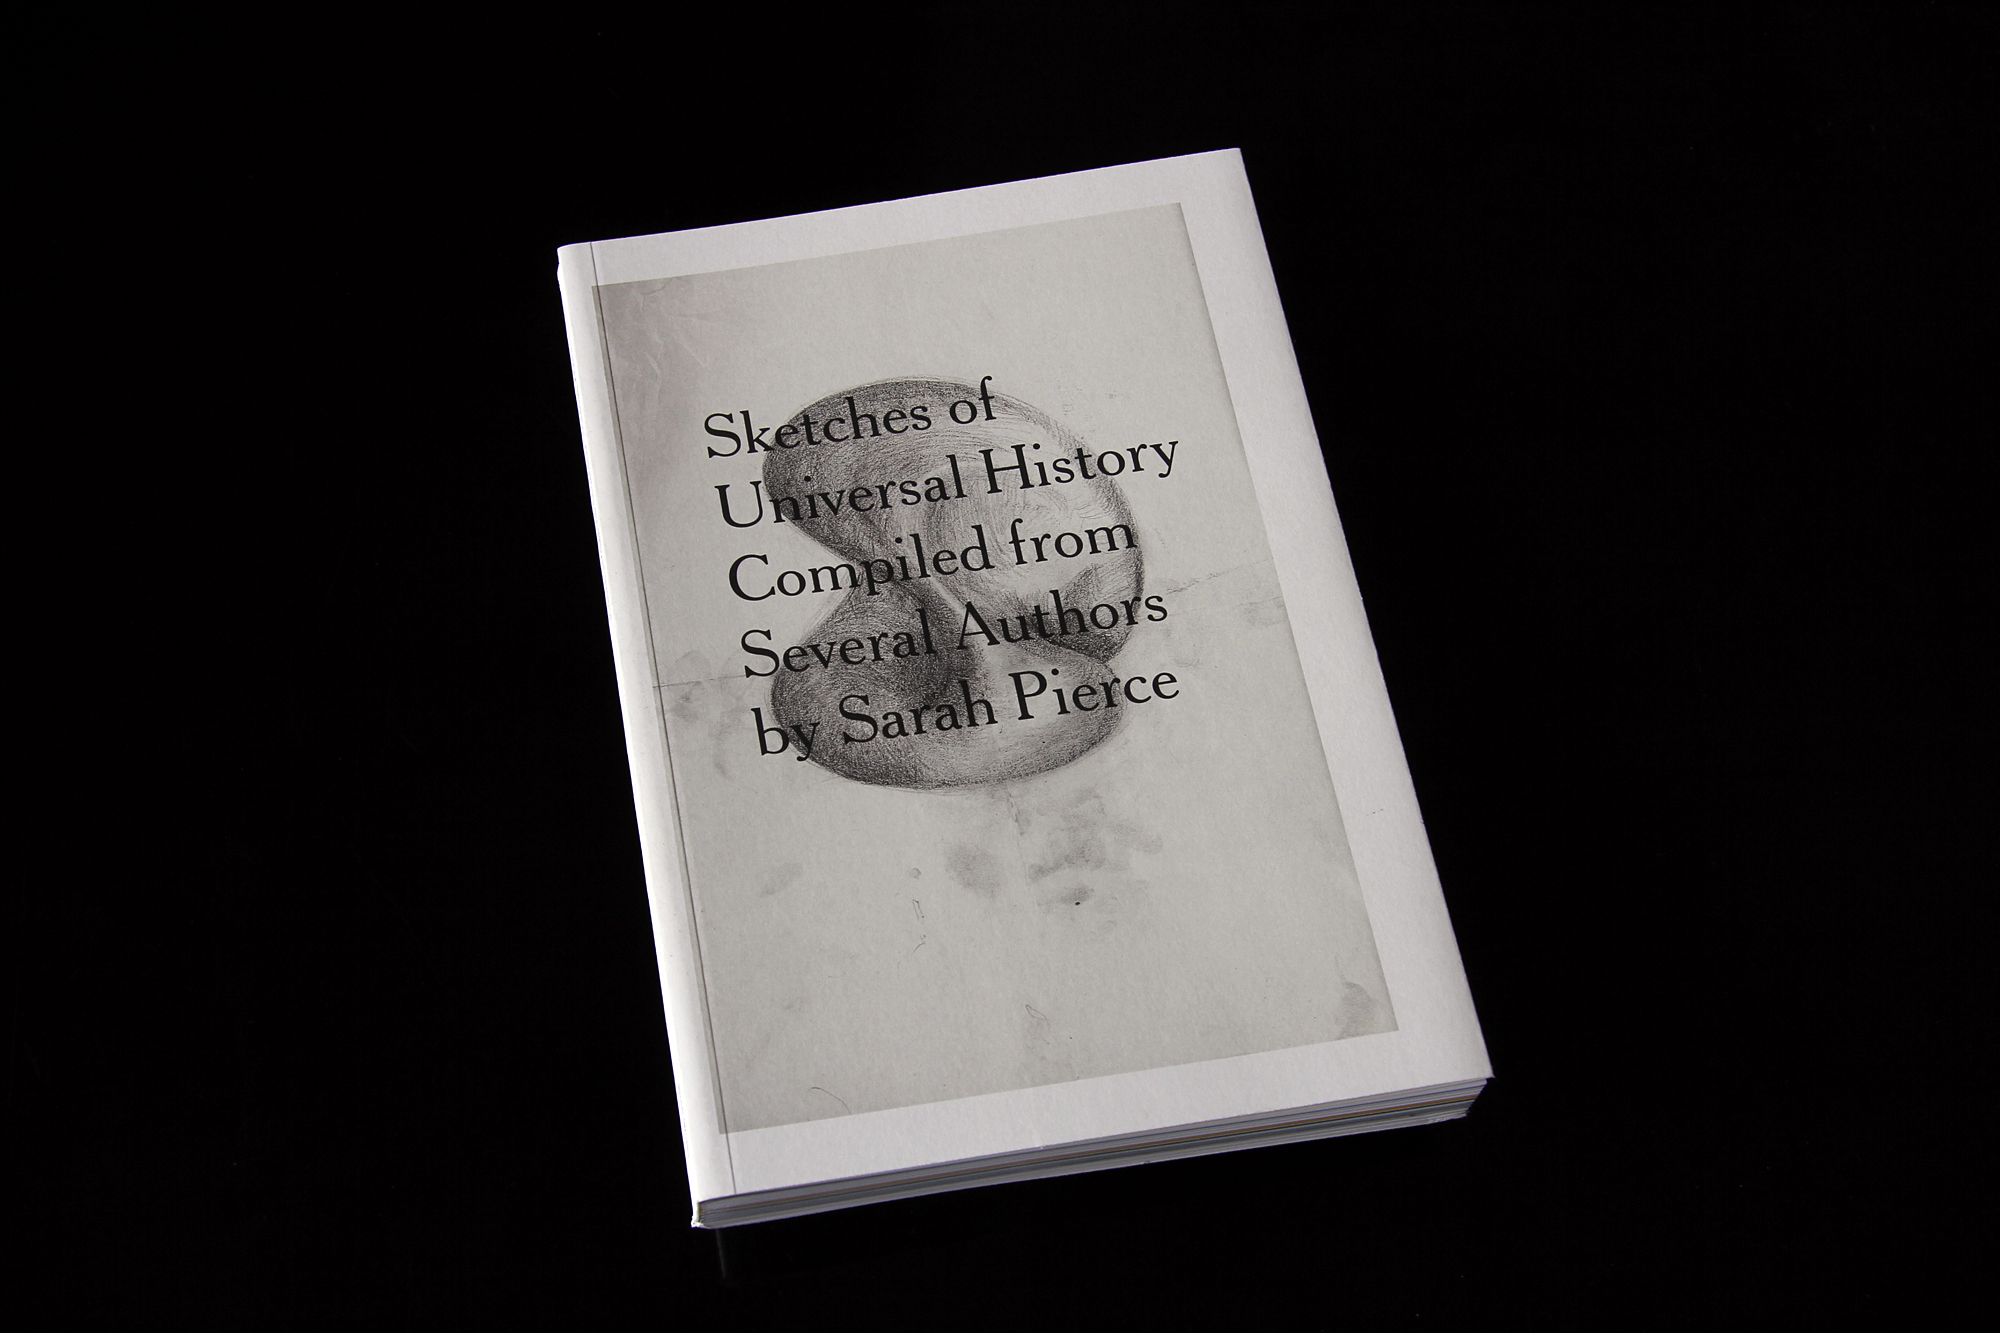 Cover image: Sketches of universal history compiled from several authors  by Sarah Pierce (2013)